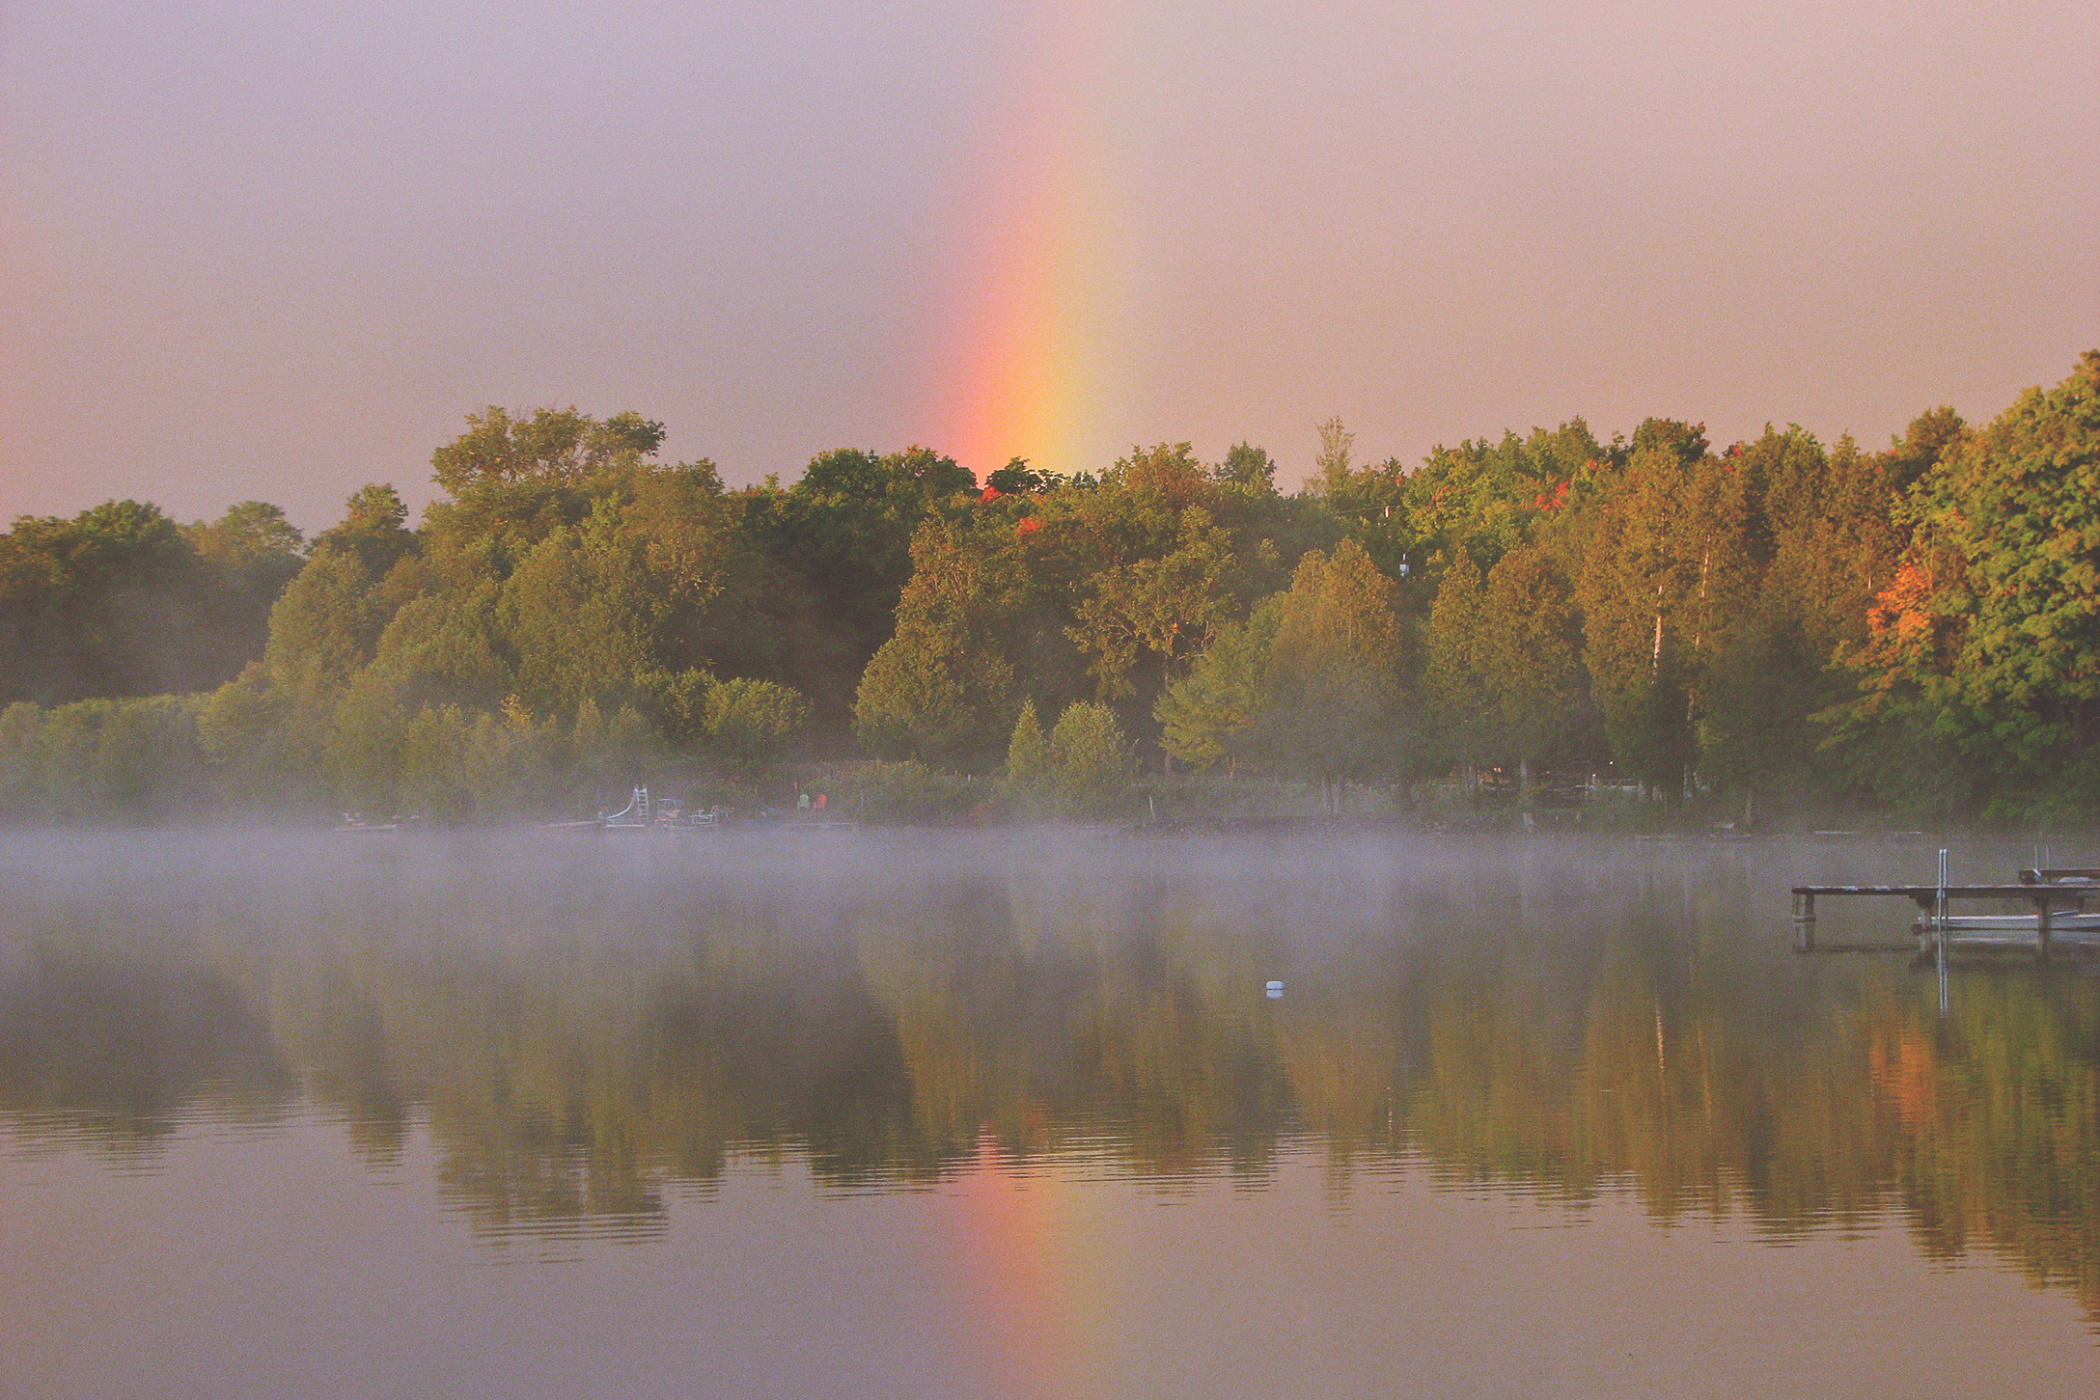 rainbow over the lake - thetemenosjournal.com